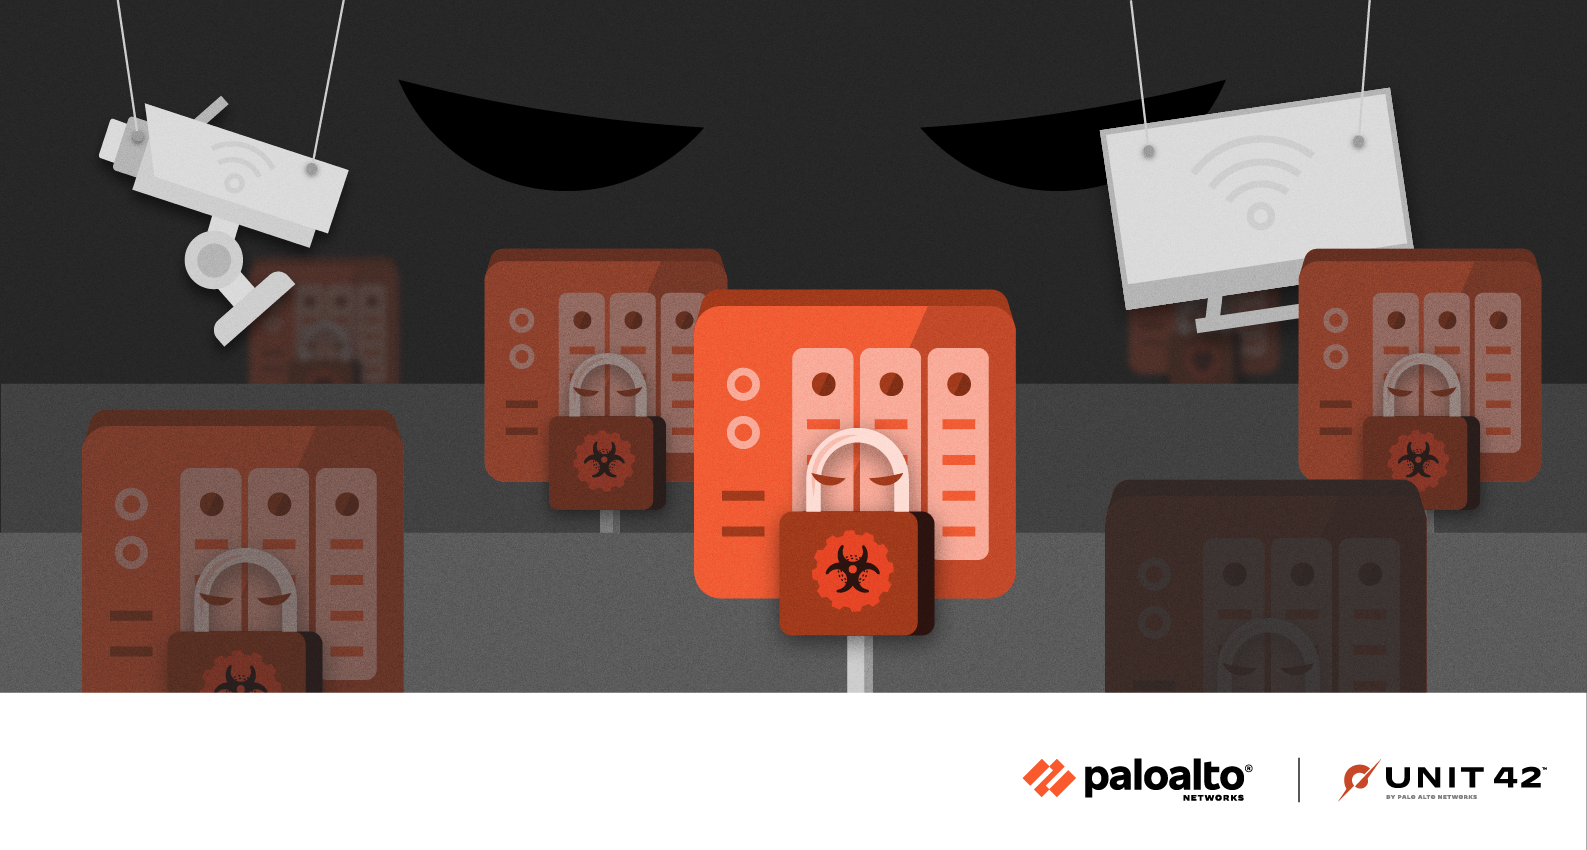 A conceptual image representing the network-attached devices common in the small office and home office that are being targeted by the eCh0raix ransomware variant.